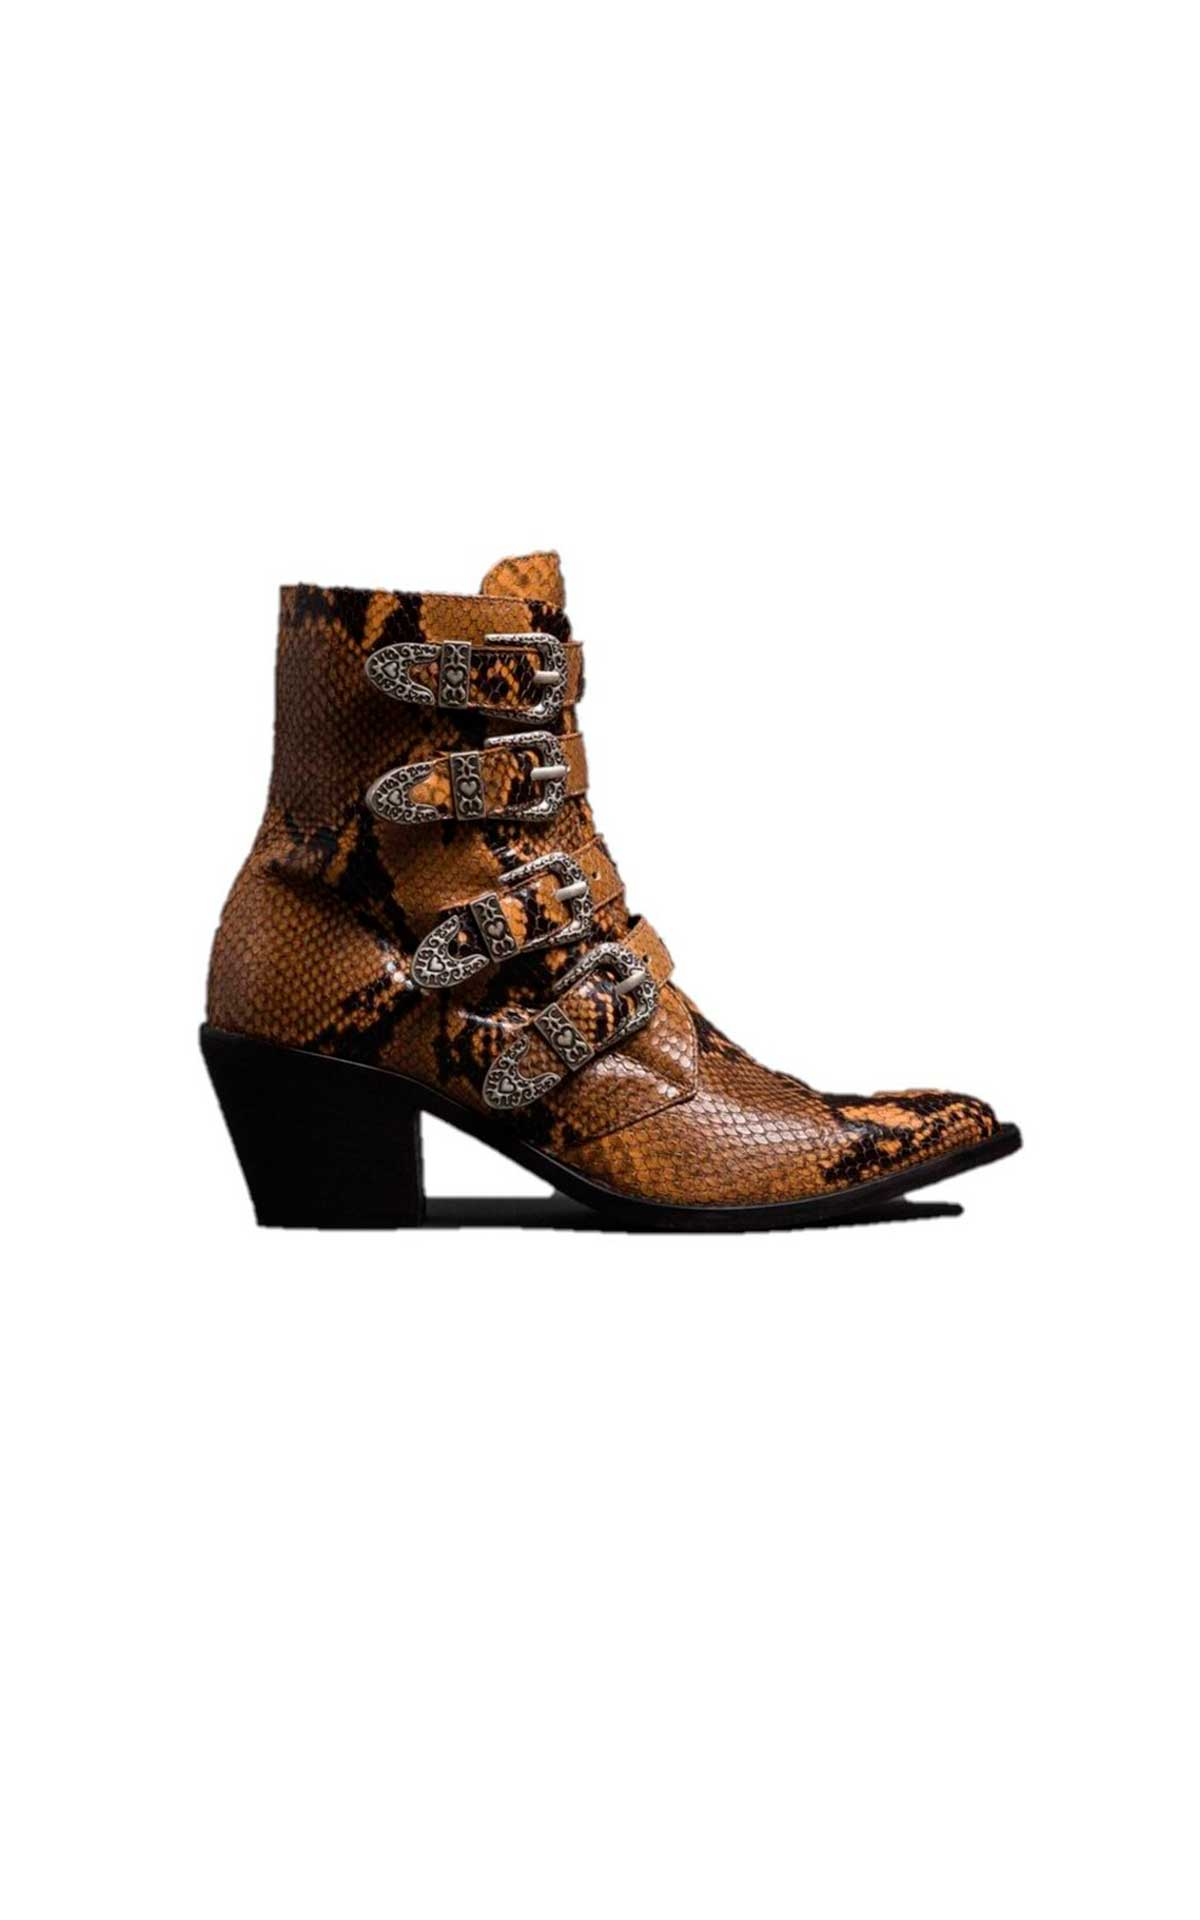 Snake skin ankle boot TWINSET